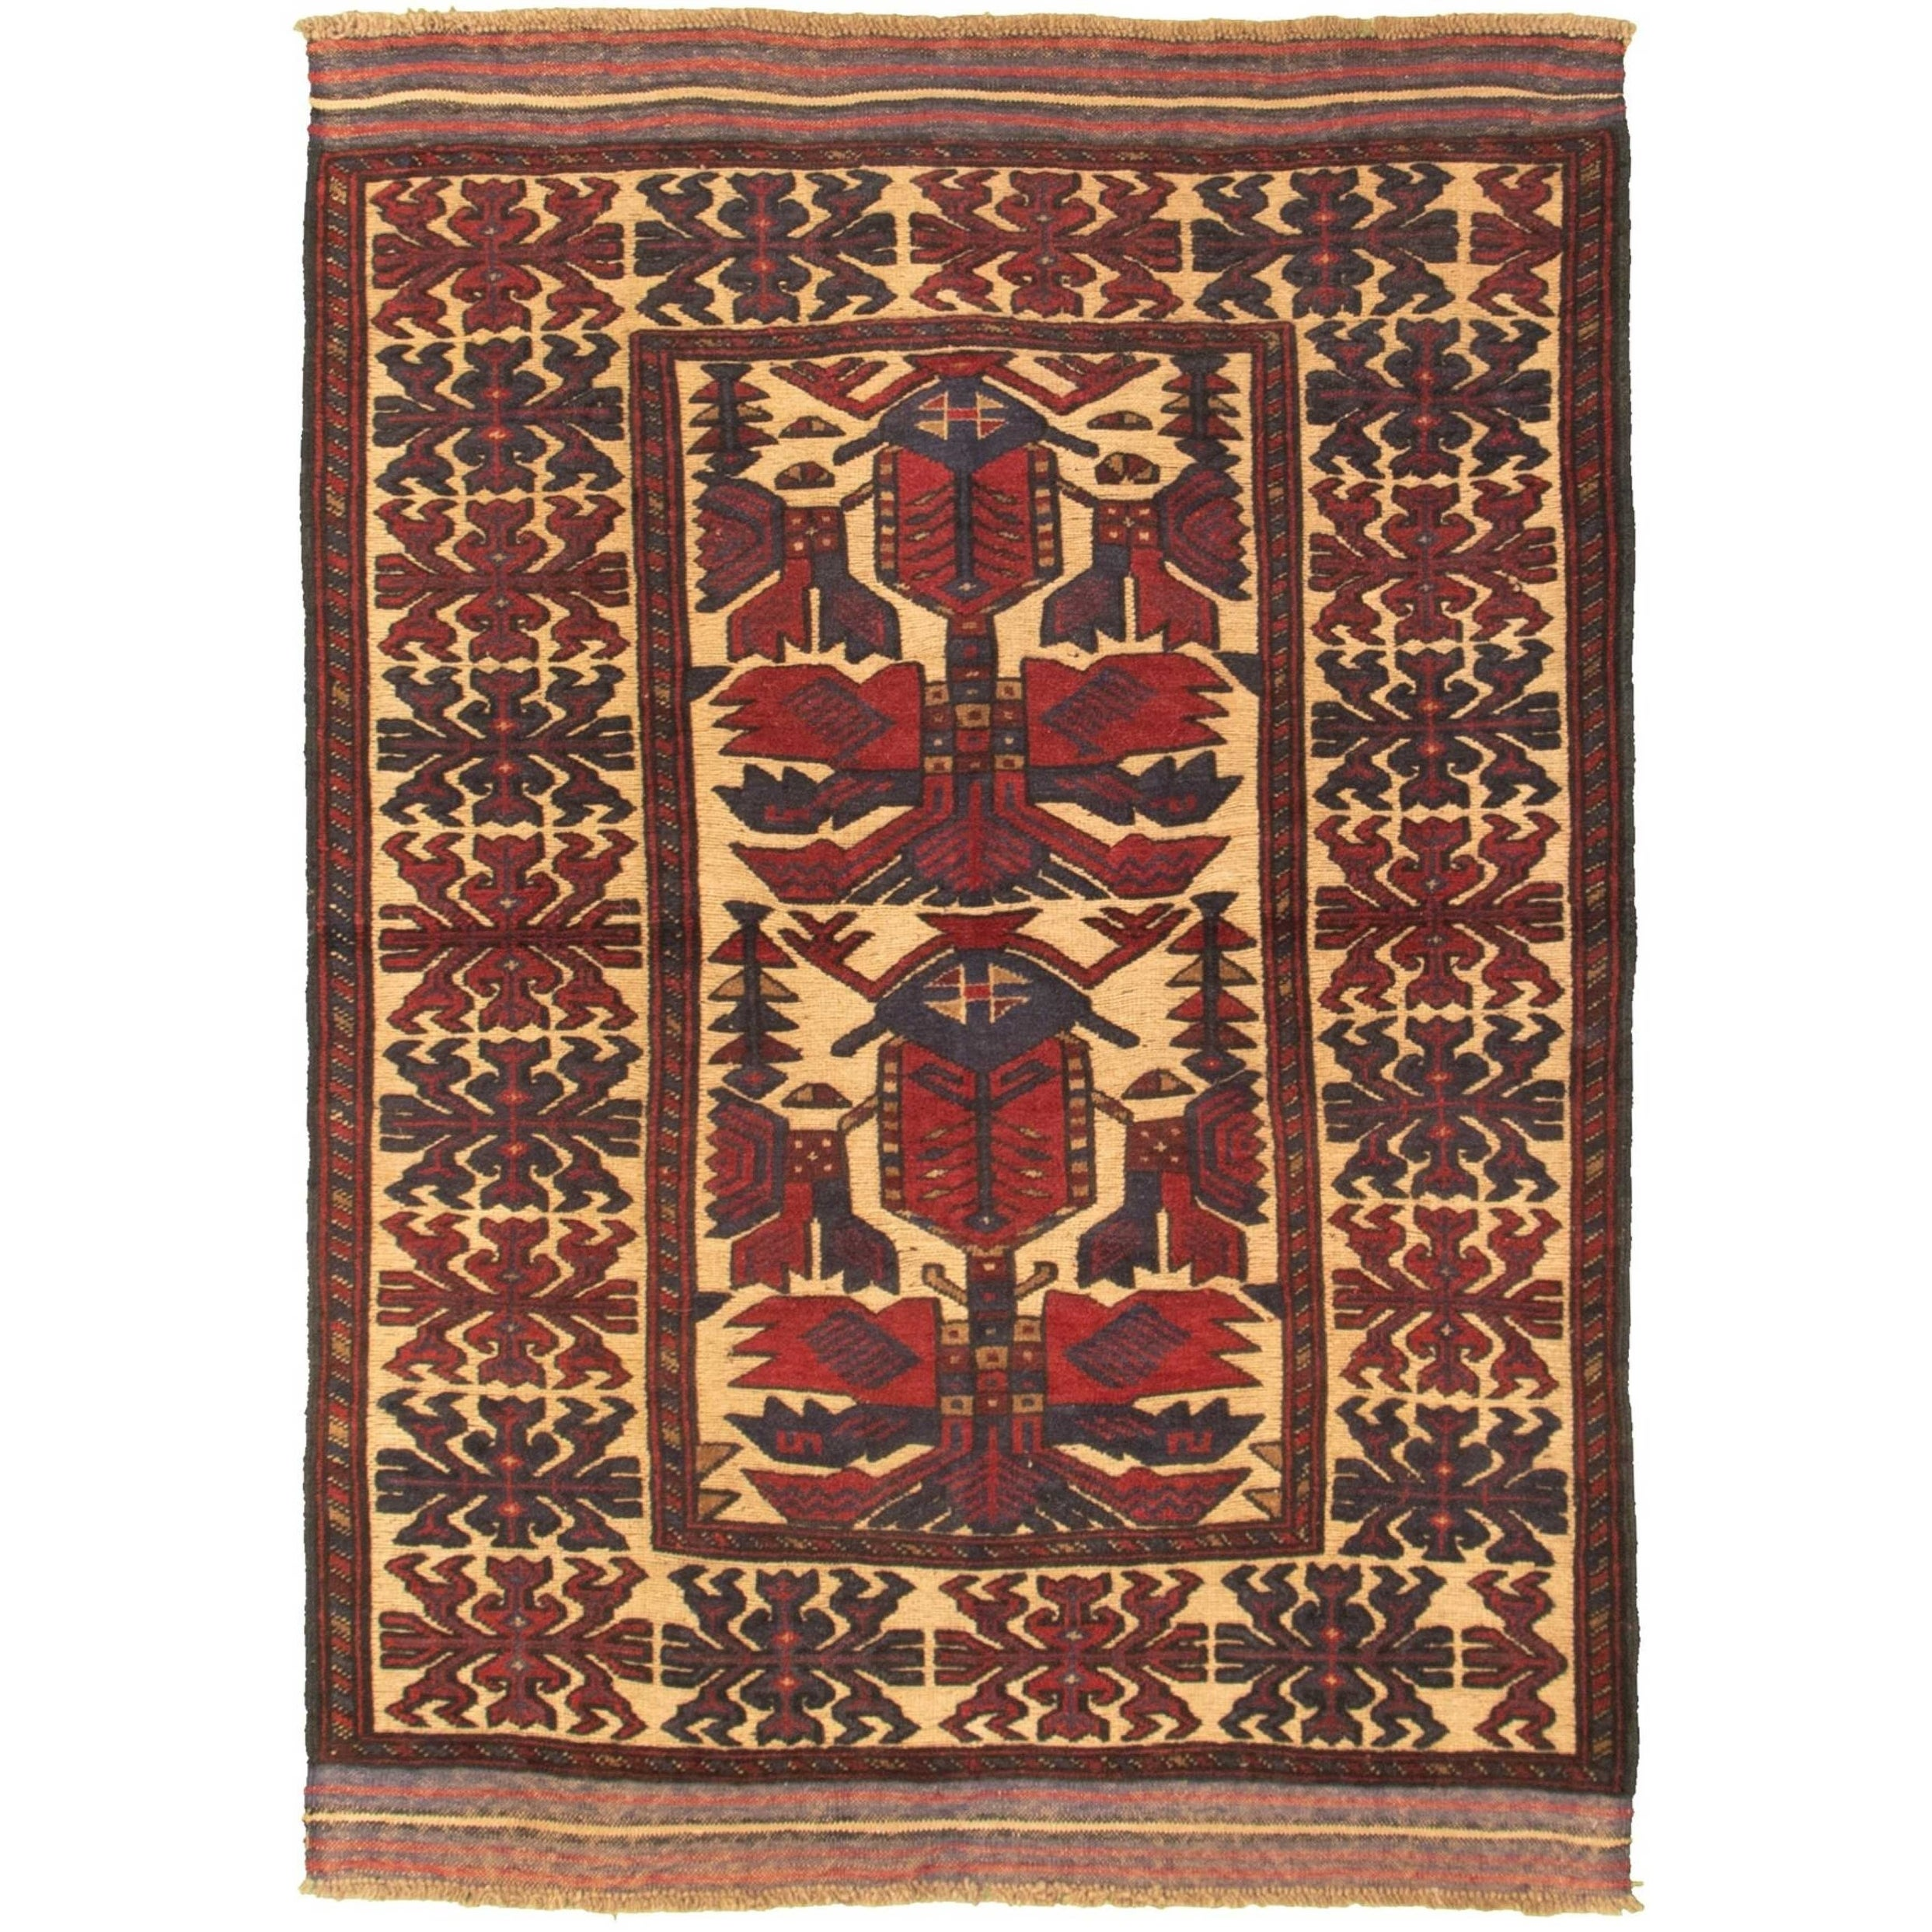 Hand Knotted Tajik Caucasian Red Tan Wool Rug On Sale Overstock 30409087